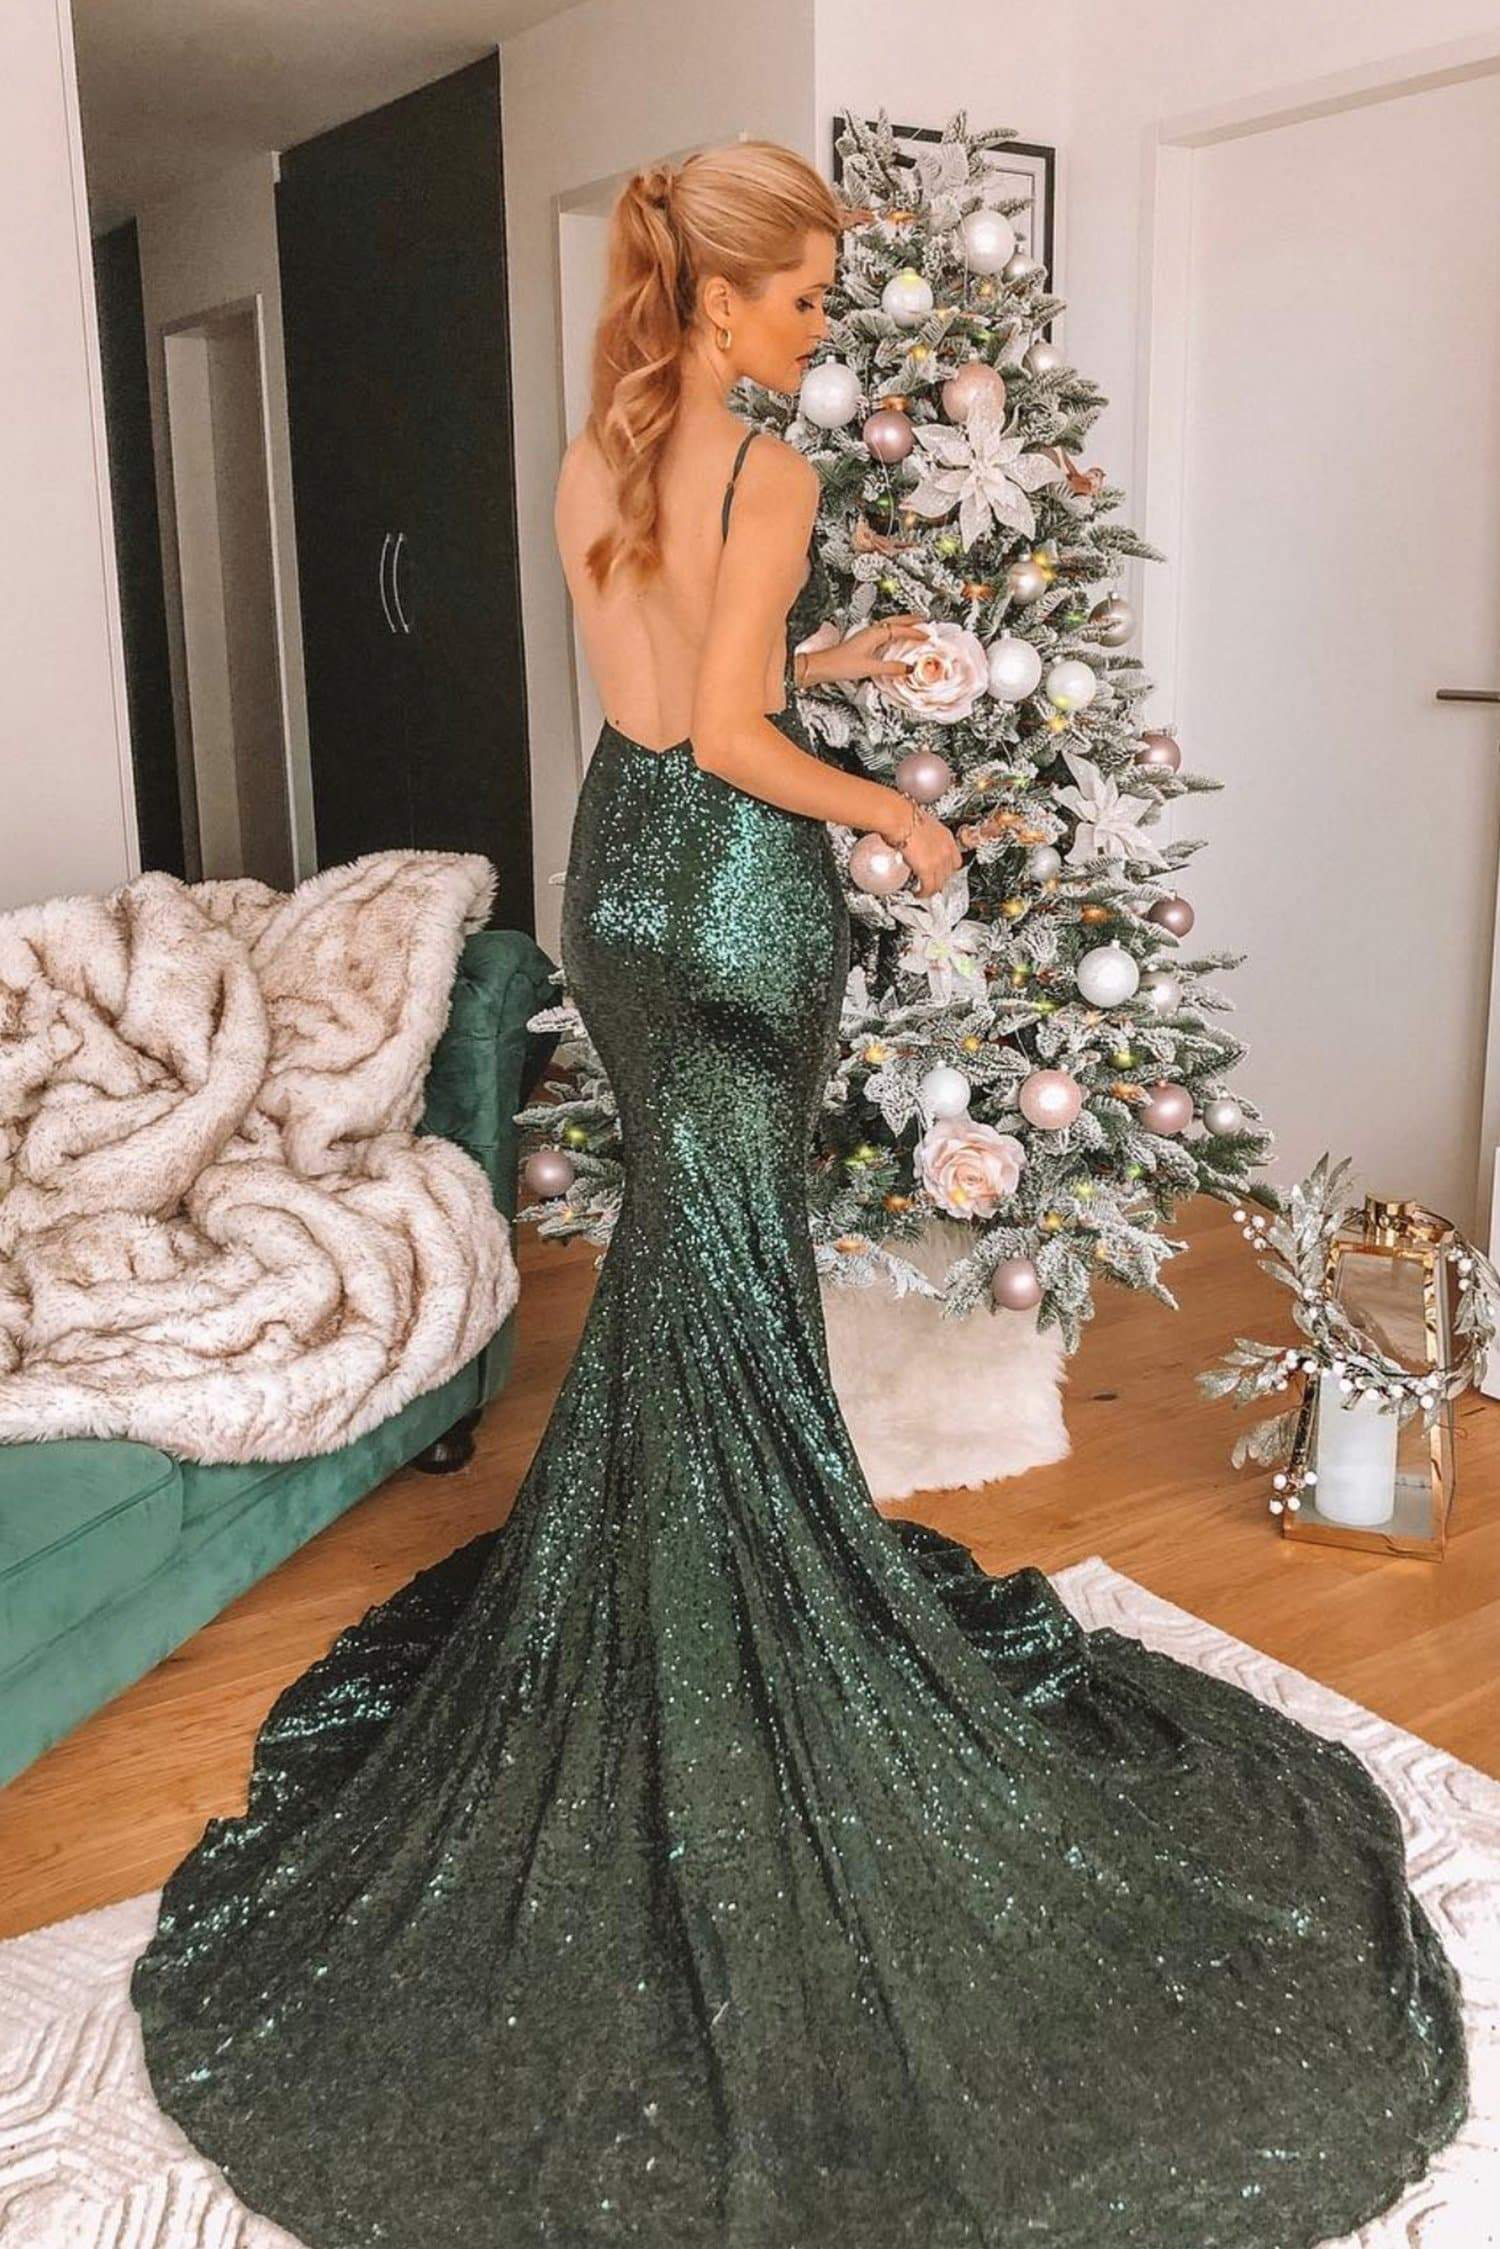 Yassmine Luxe - Emerald Sequin Backless Gown with Mermaid Train